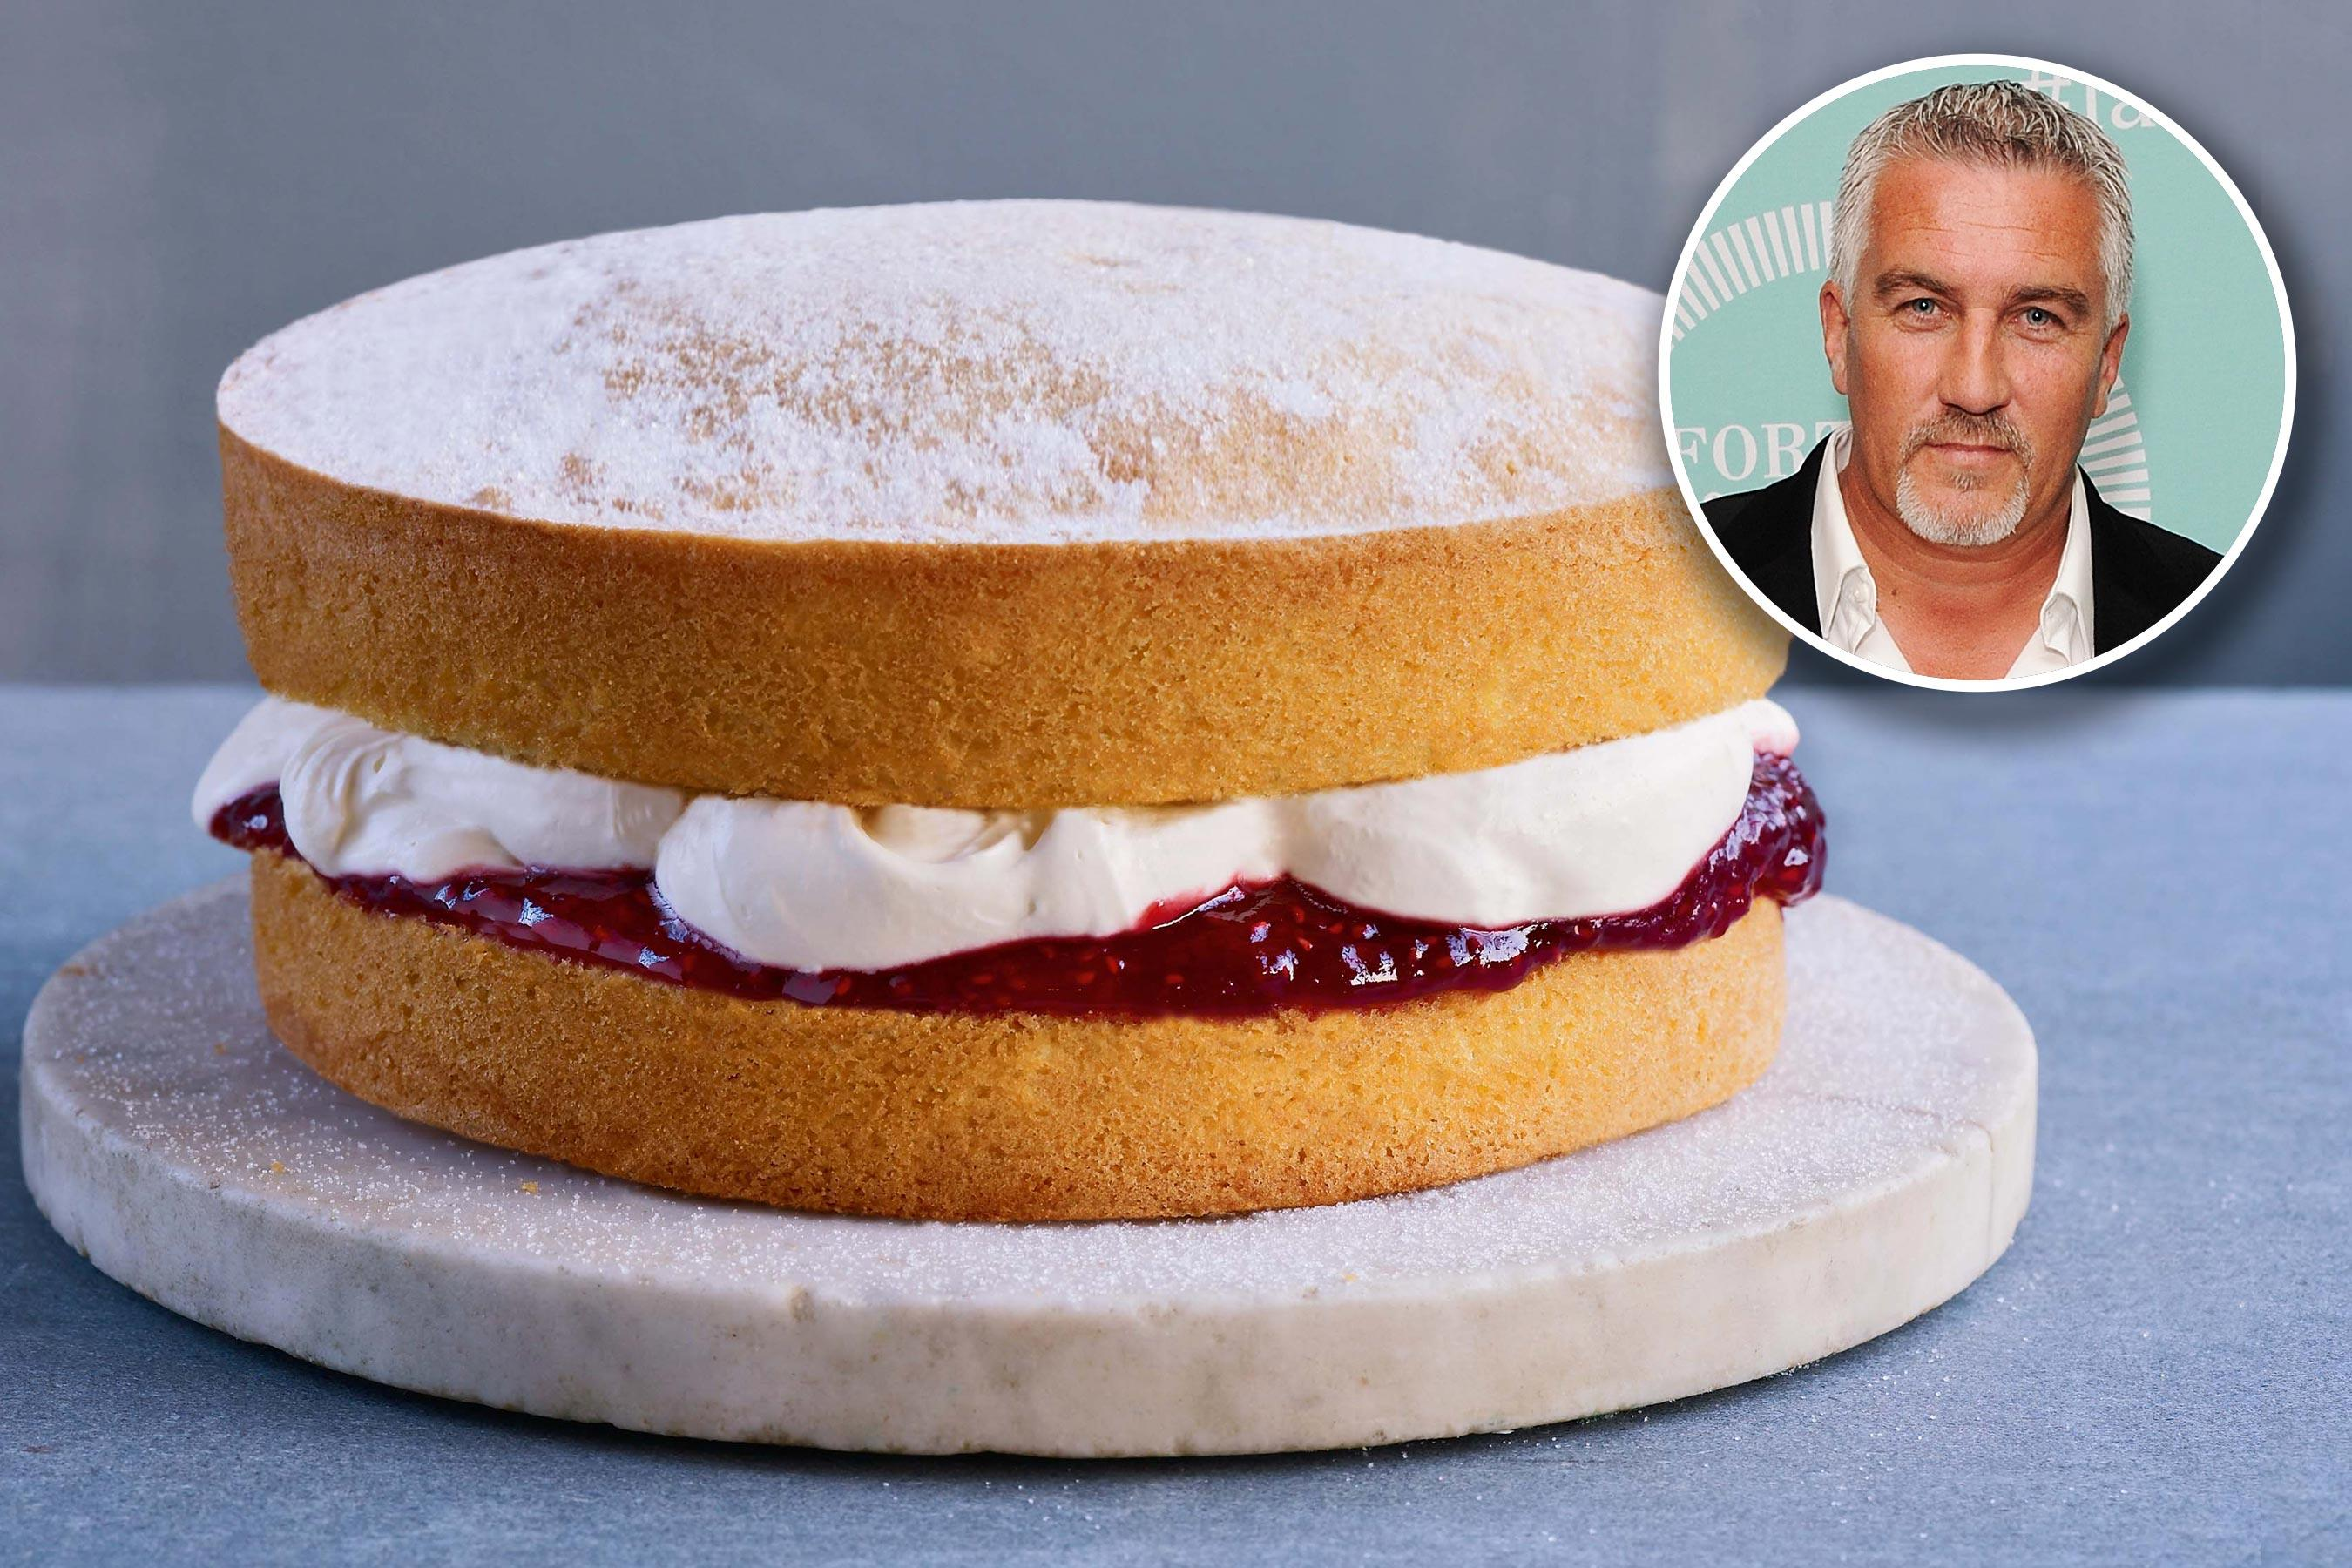 the great british baking show judge paul hollywood shares his victoria sponge recipe